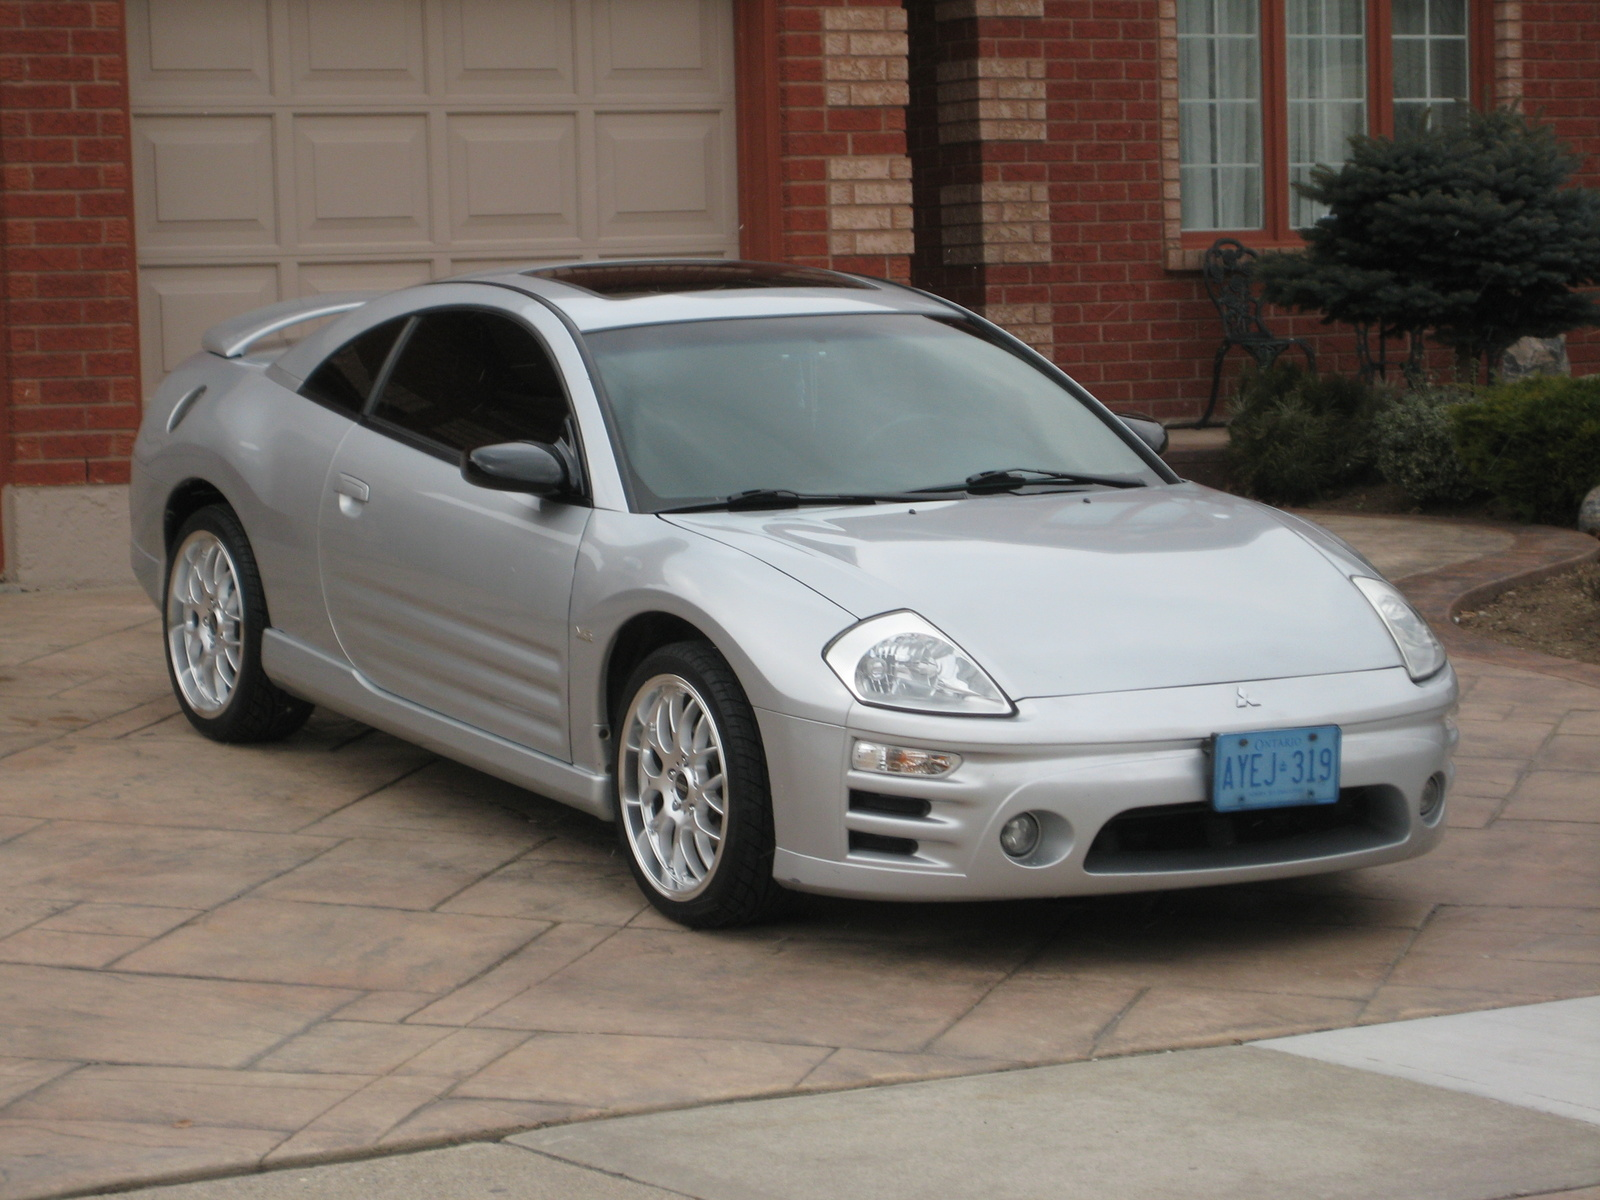 2003 mitsubishi eclipse pictures cargurus. Black Bedroom Furniture Sets. Home Design Ideas